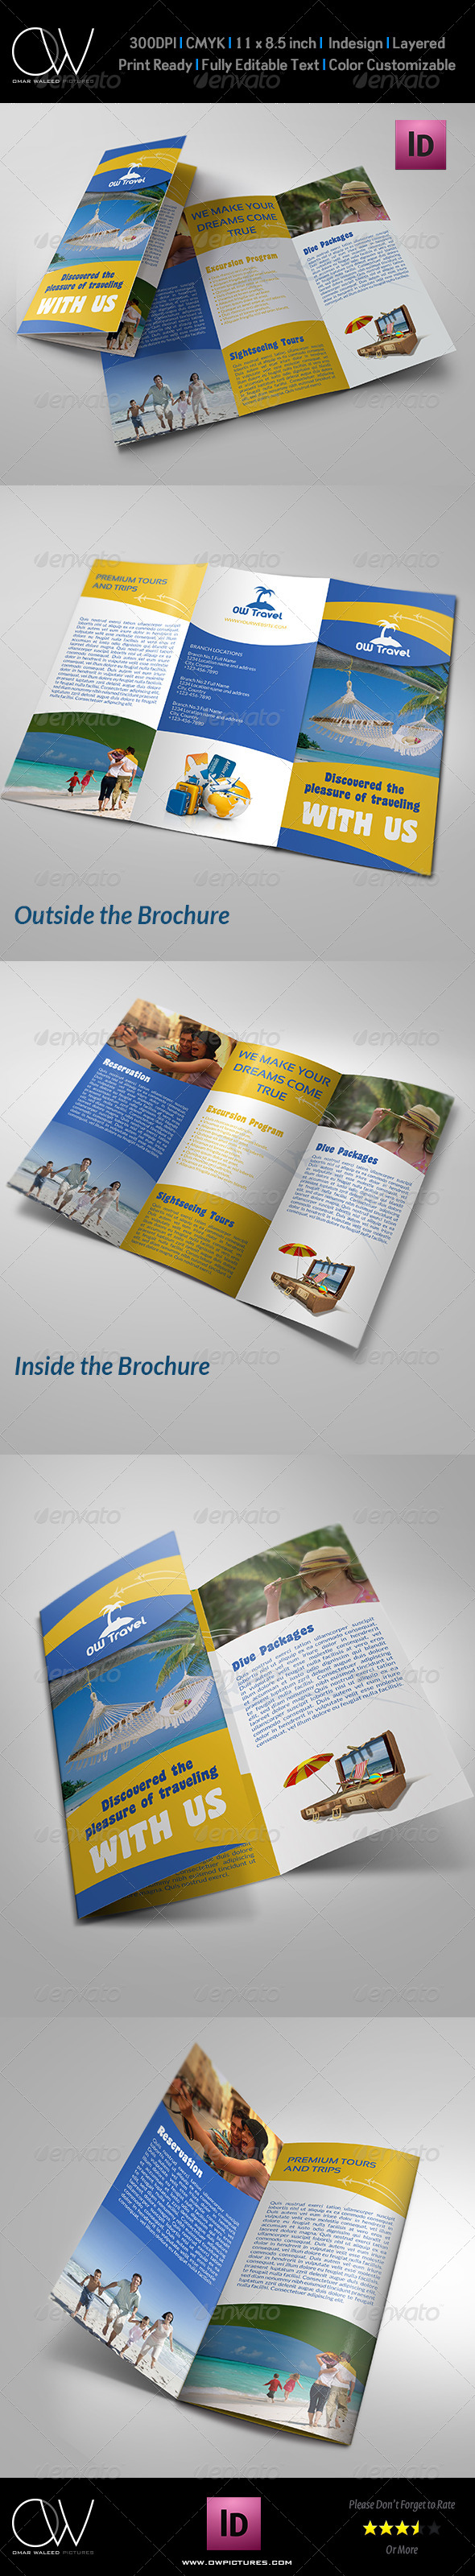 Travel Company Tri Fold Brochure Template - Informational Brochures